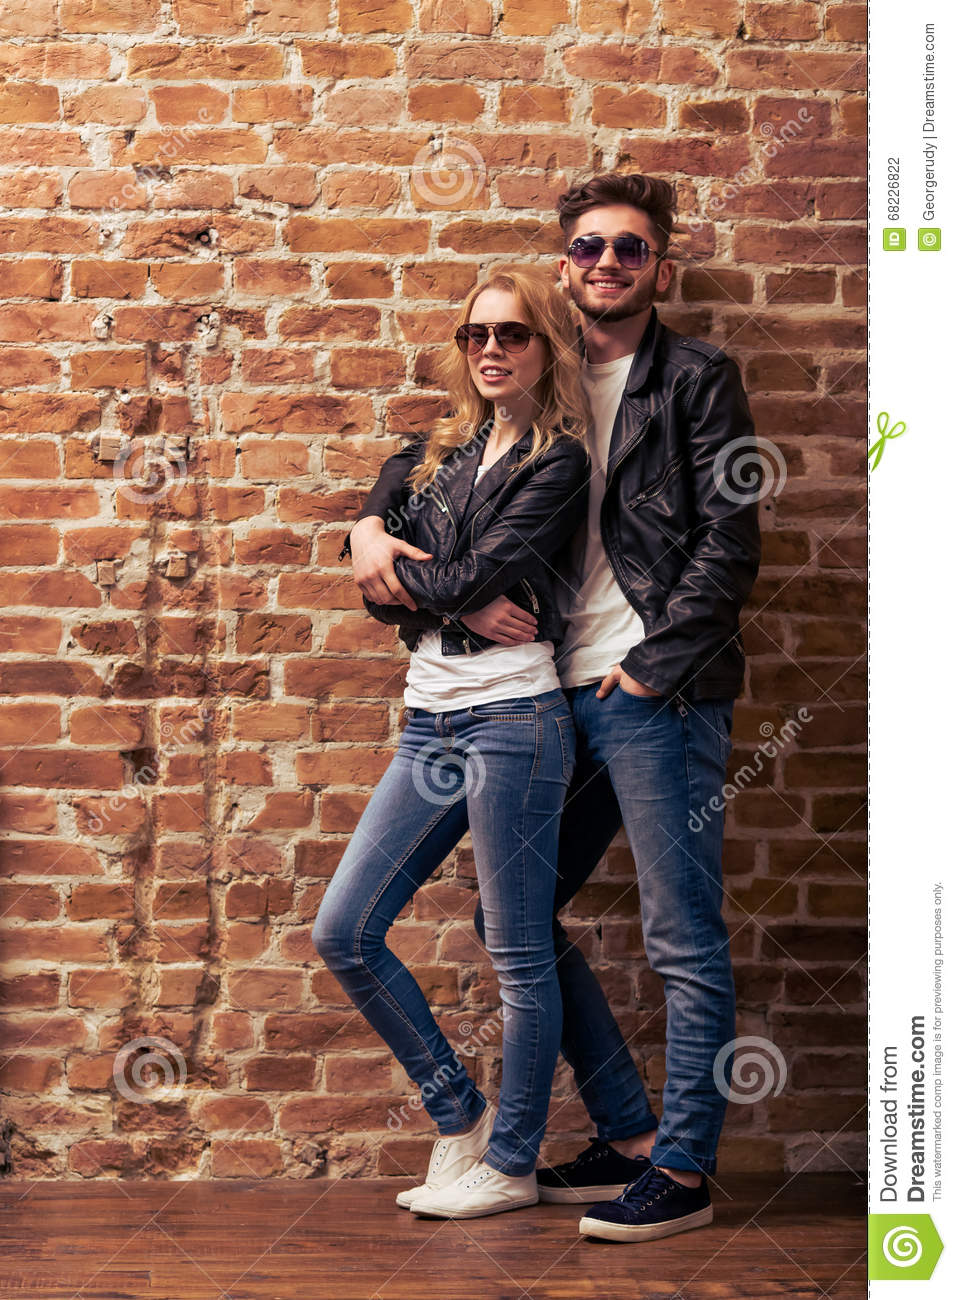 Cool Beautiful Young Couple In Leather Jackets And Sunglasses Is Looking At Camera Posing And Smiling Standing Against Brick Wall